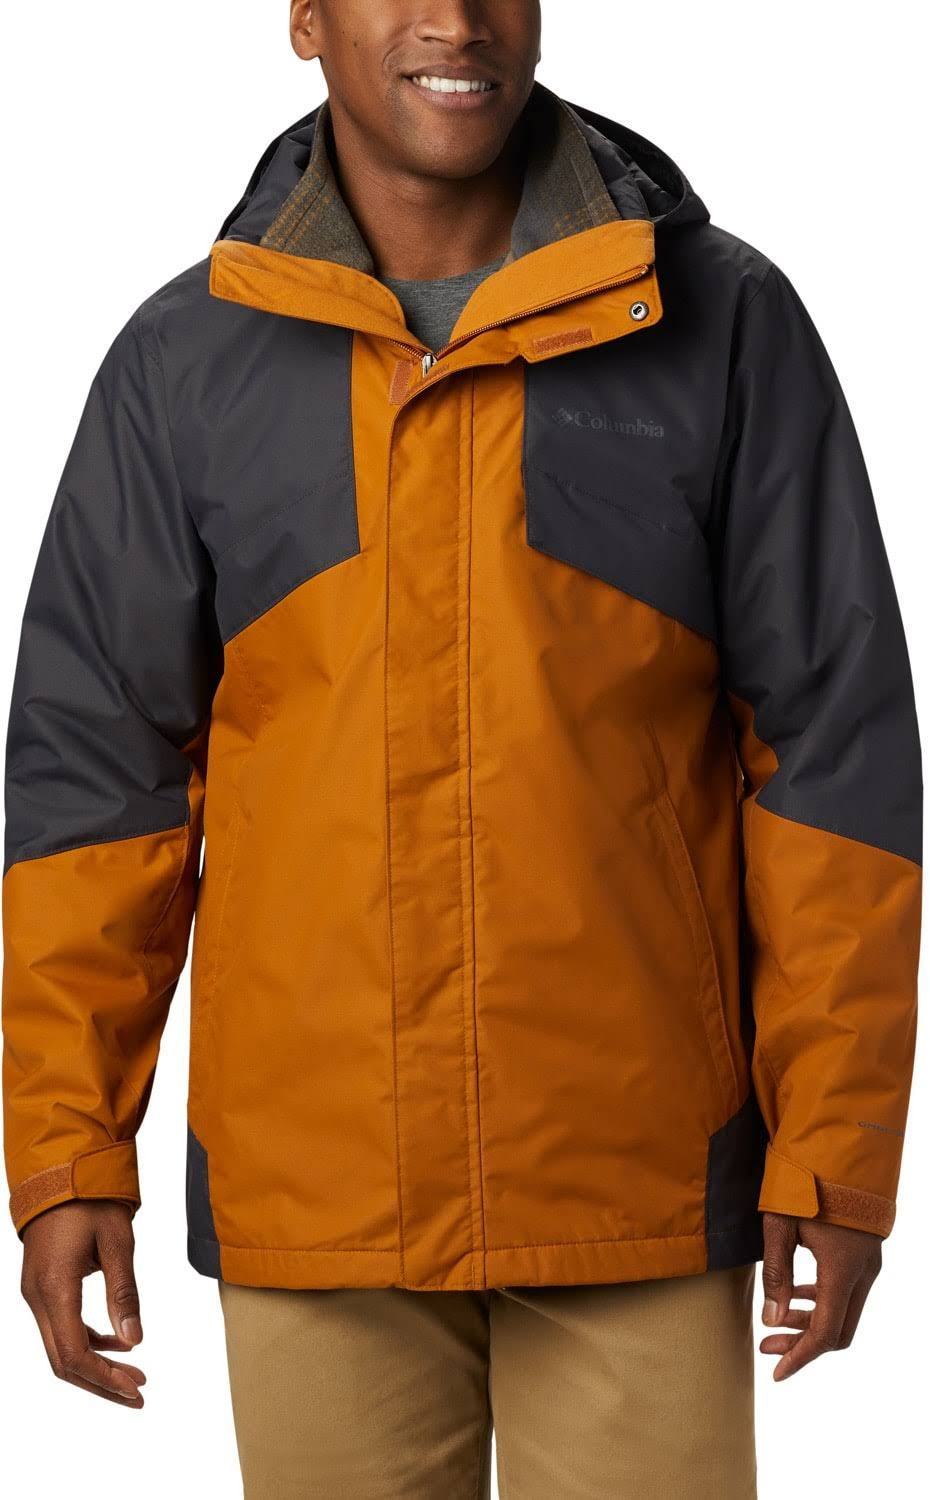 Columbia Men's Bugaboo II Fleece Interchange Jacket - Medium - Burnished Amber/Shark